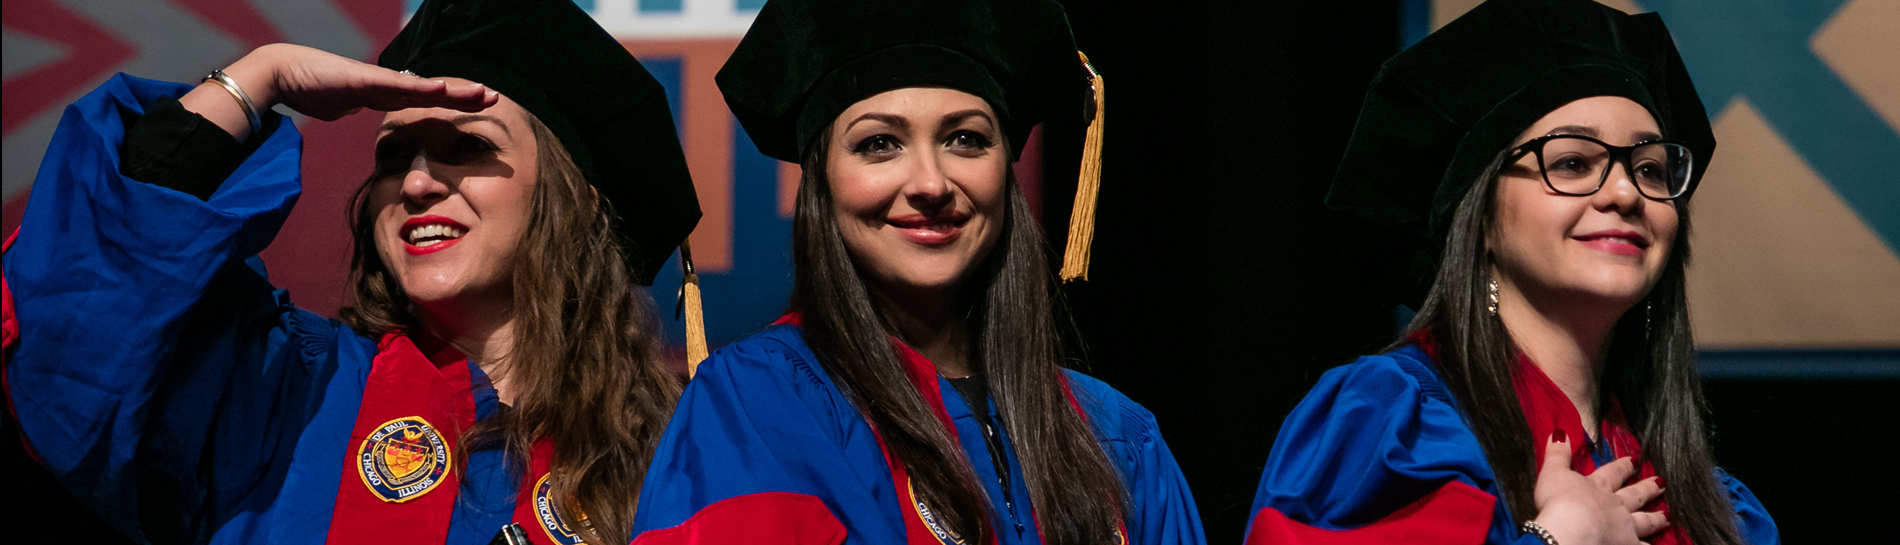 Commencement (photo: DePaul University/Jeff Carrion)